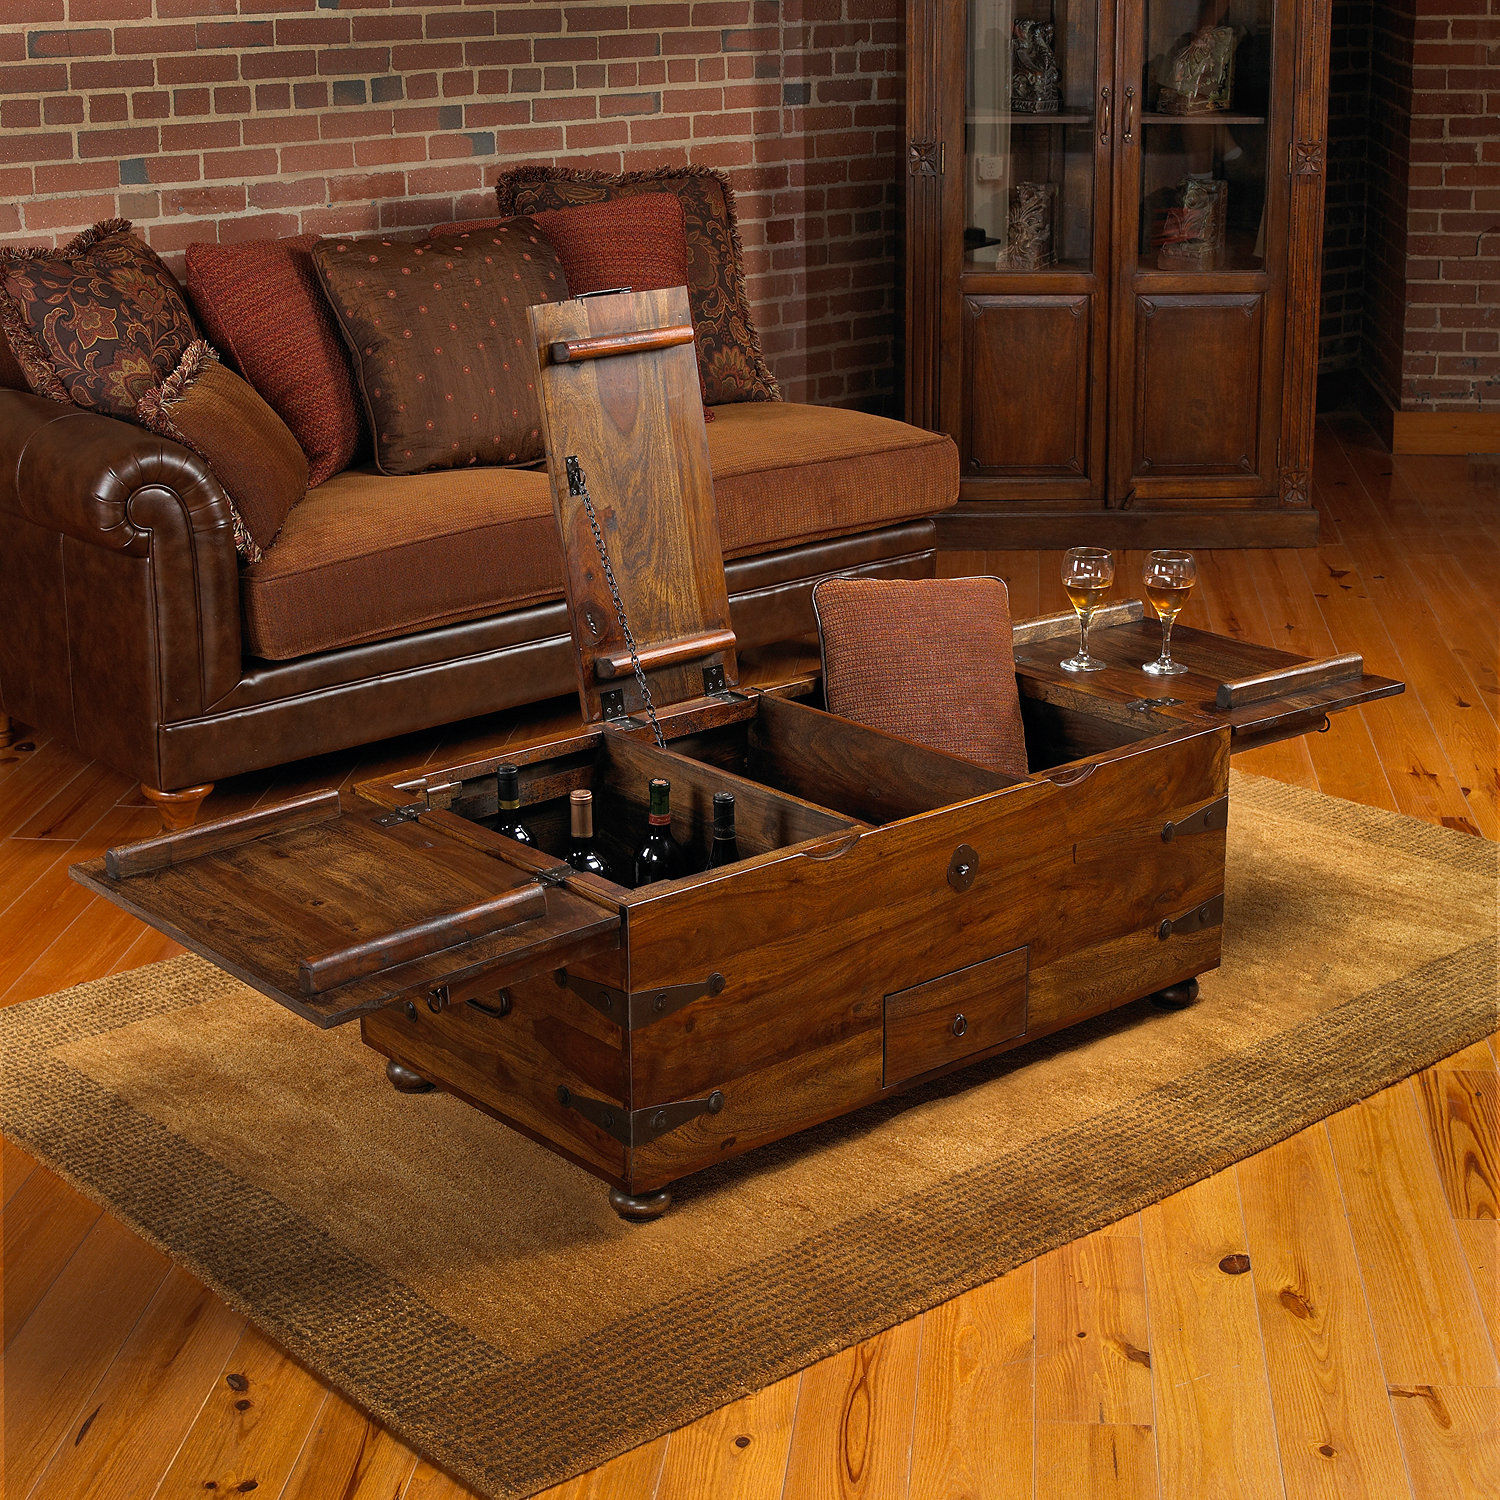 ... Trunk Coffee Table. Preparing Zoom - Thakat Bar Box Trunk Coffee Table - Wine Enthusiast